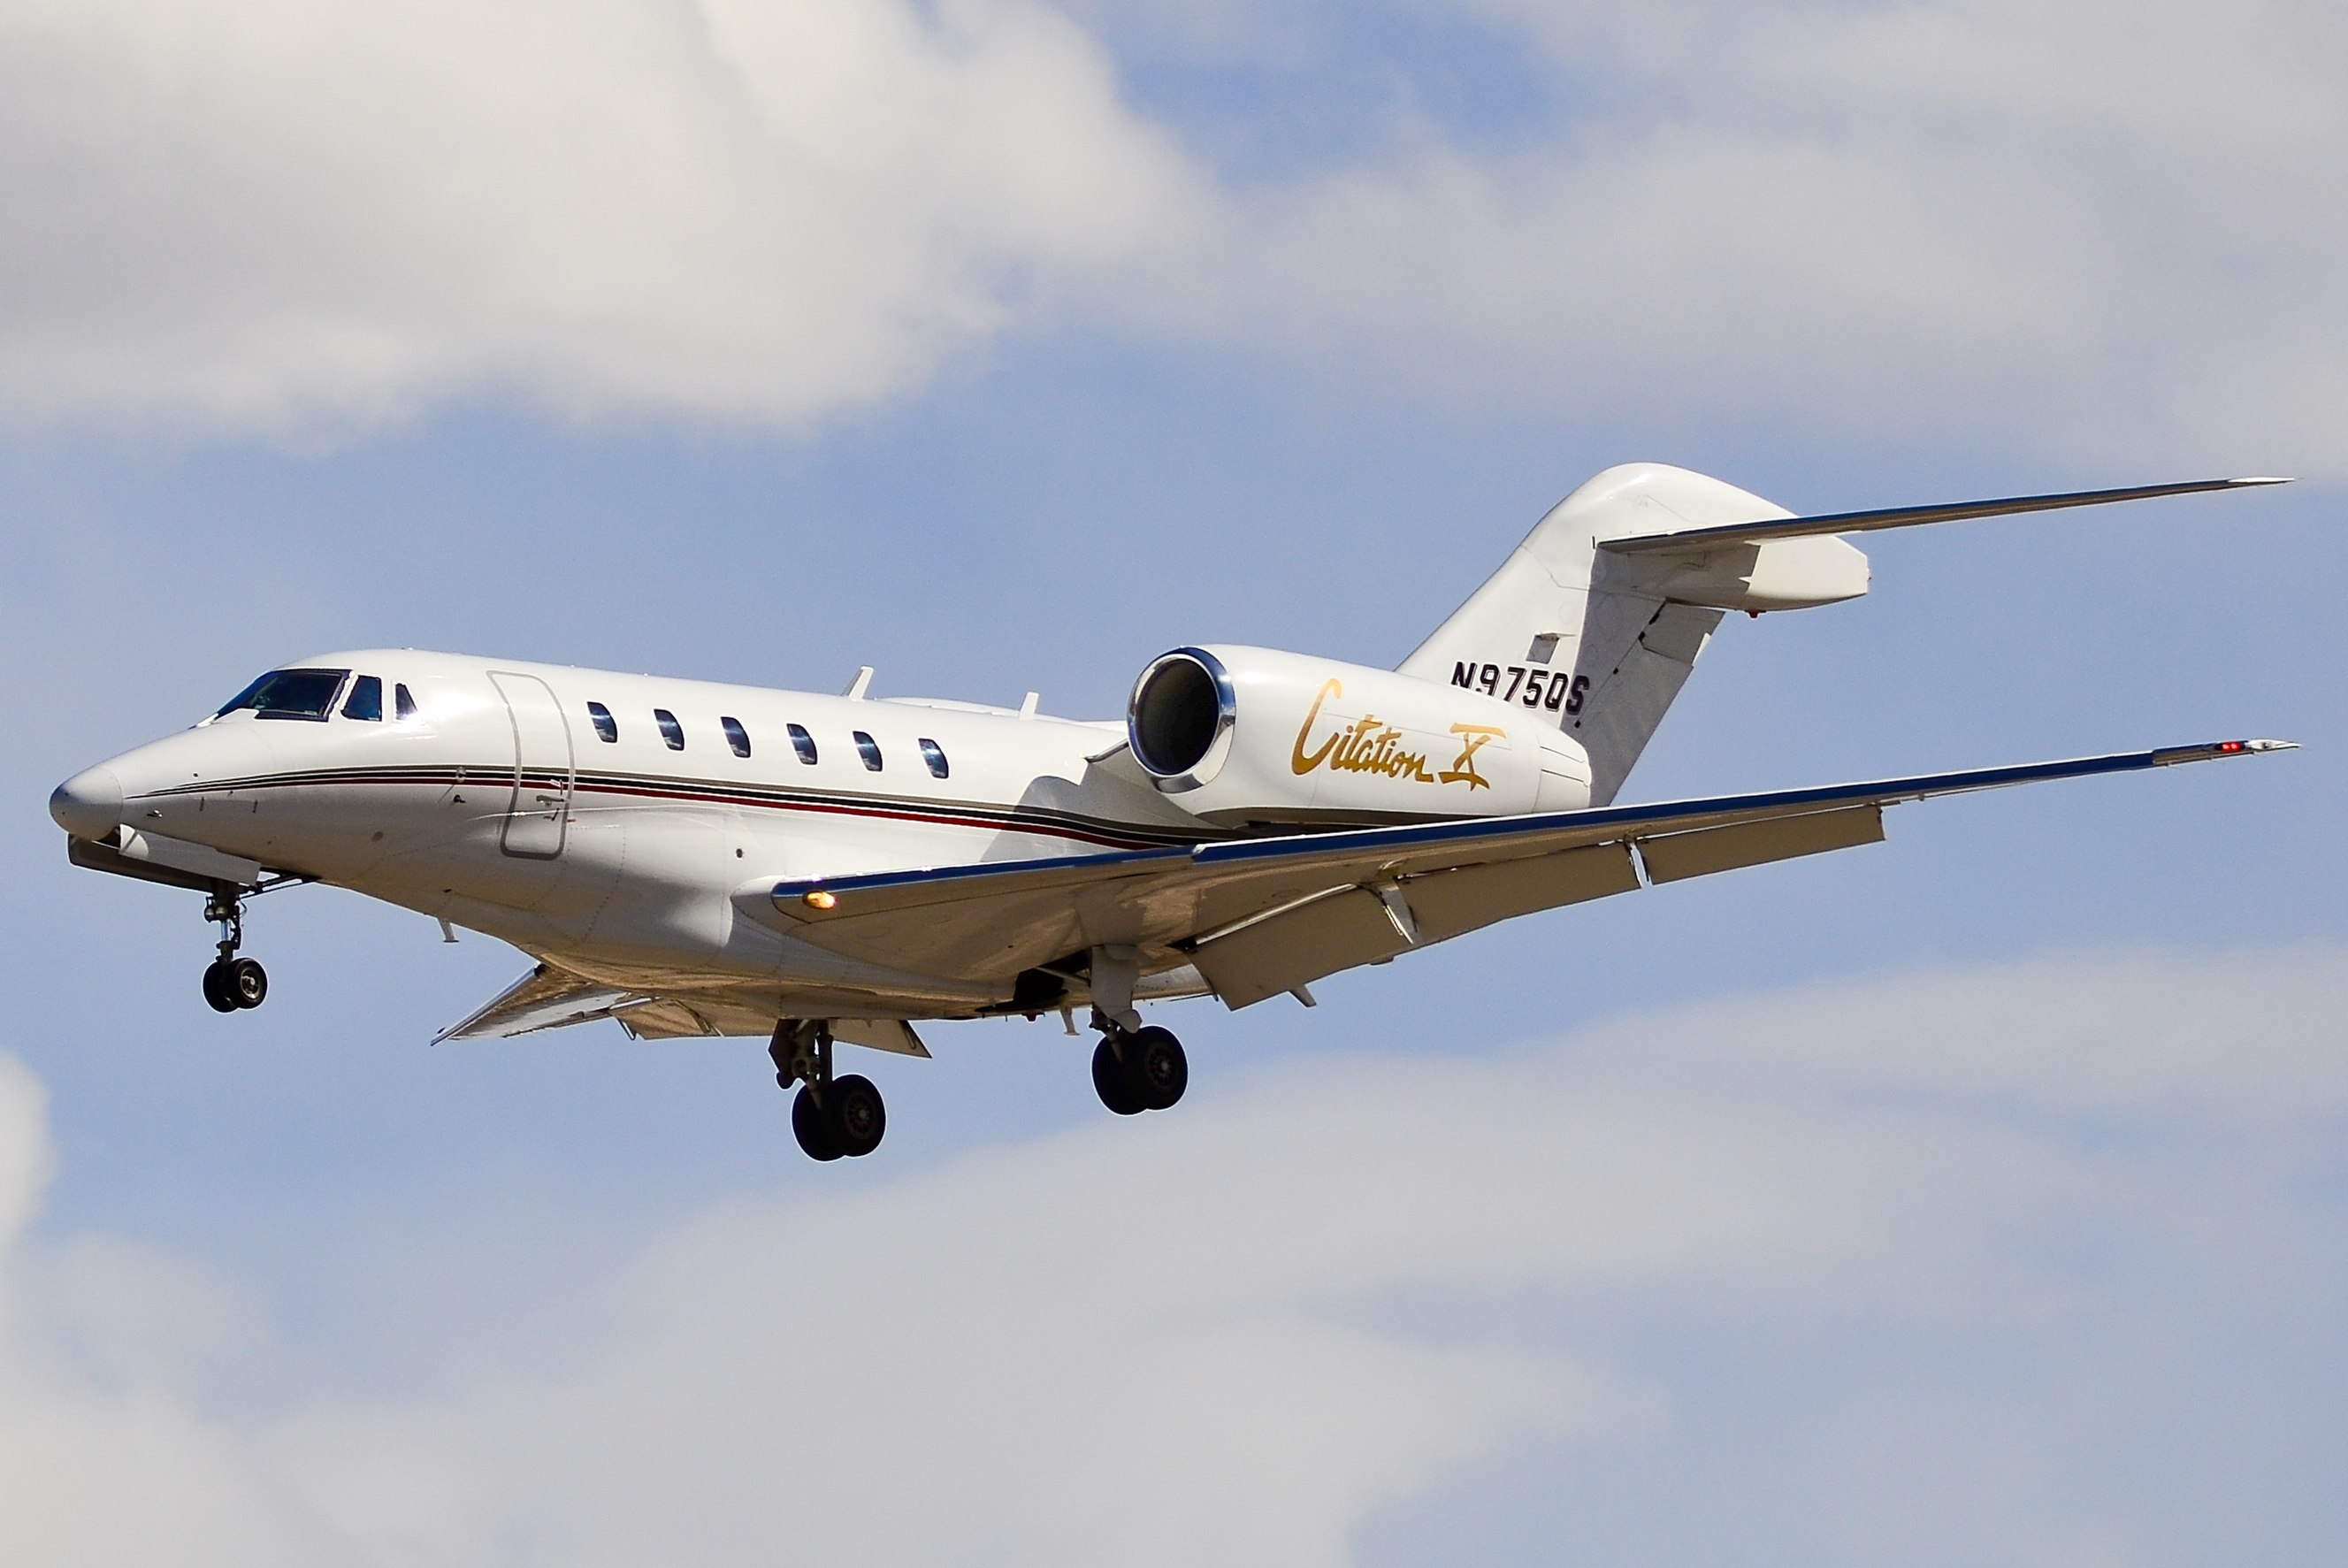 Cessna Citation X - The complete information and online sale